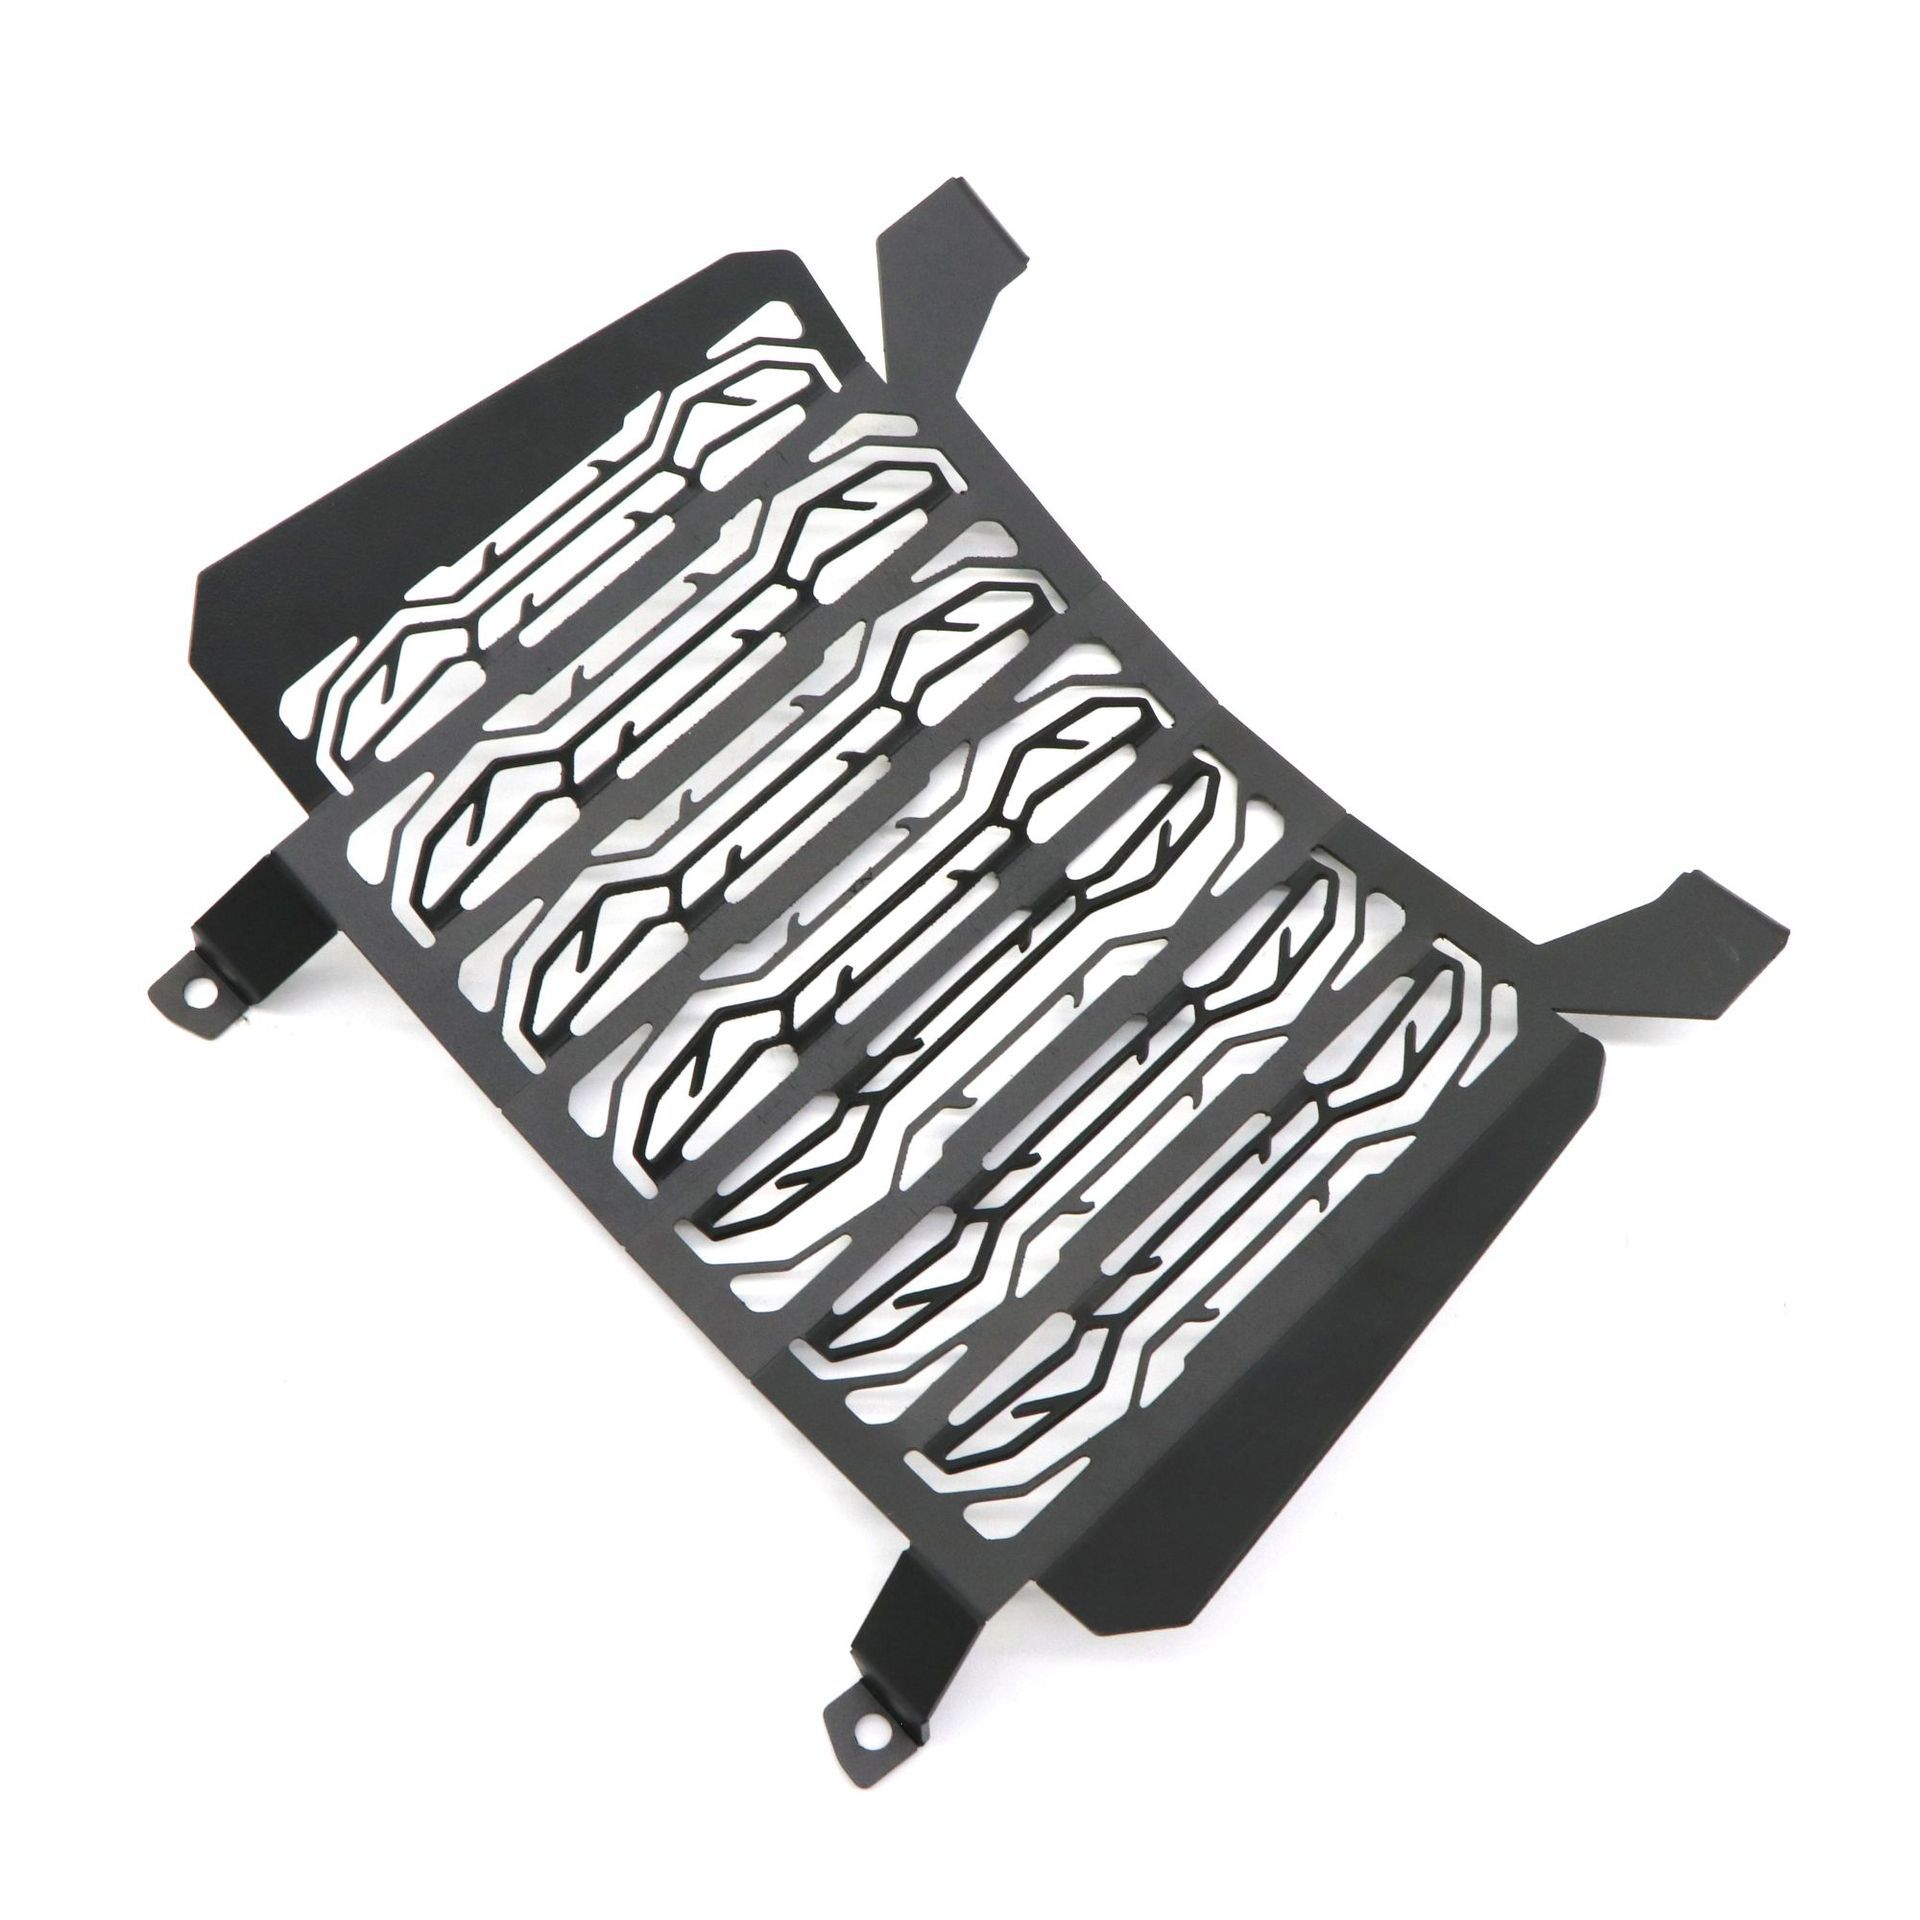 Professional Radiator Guard Protector Cover for BMW F750GS F850GS black